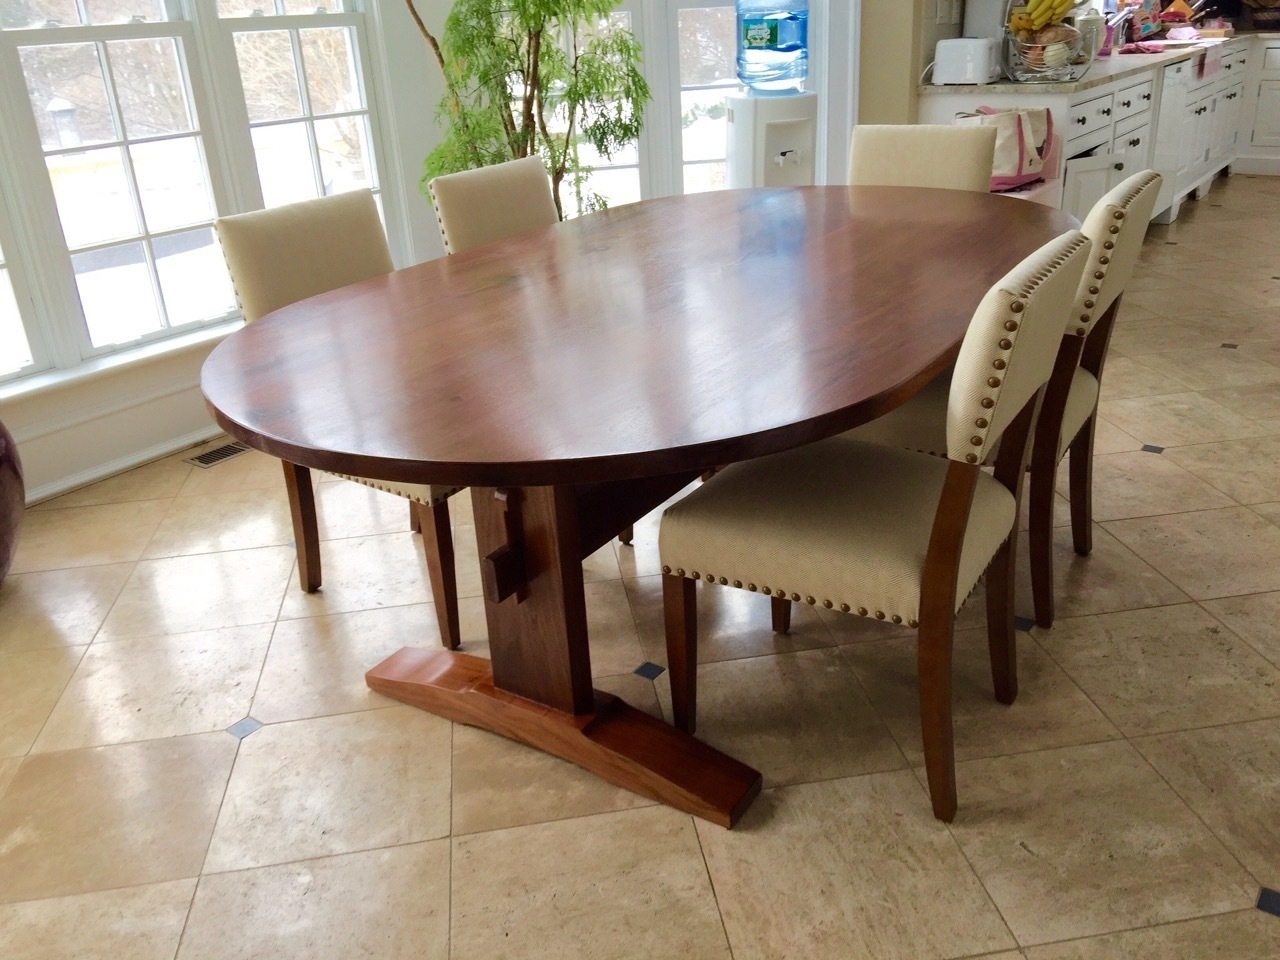 Custom Dining Tables For New York City, Ny; Long Island, Ny & Darien, Ct With Newest New York Dining Tables (View 9 of 25)